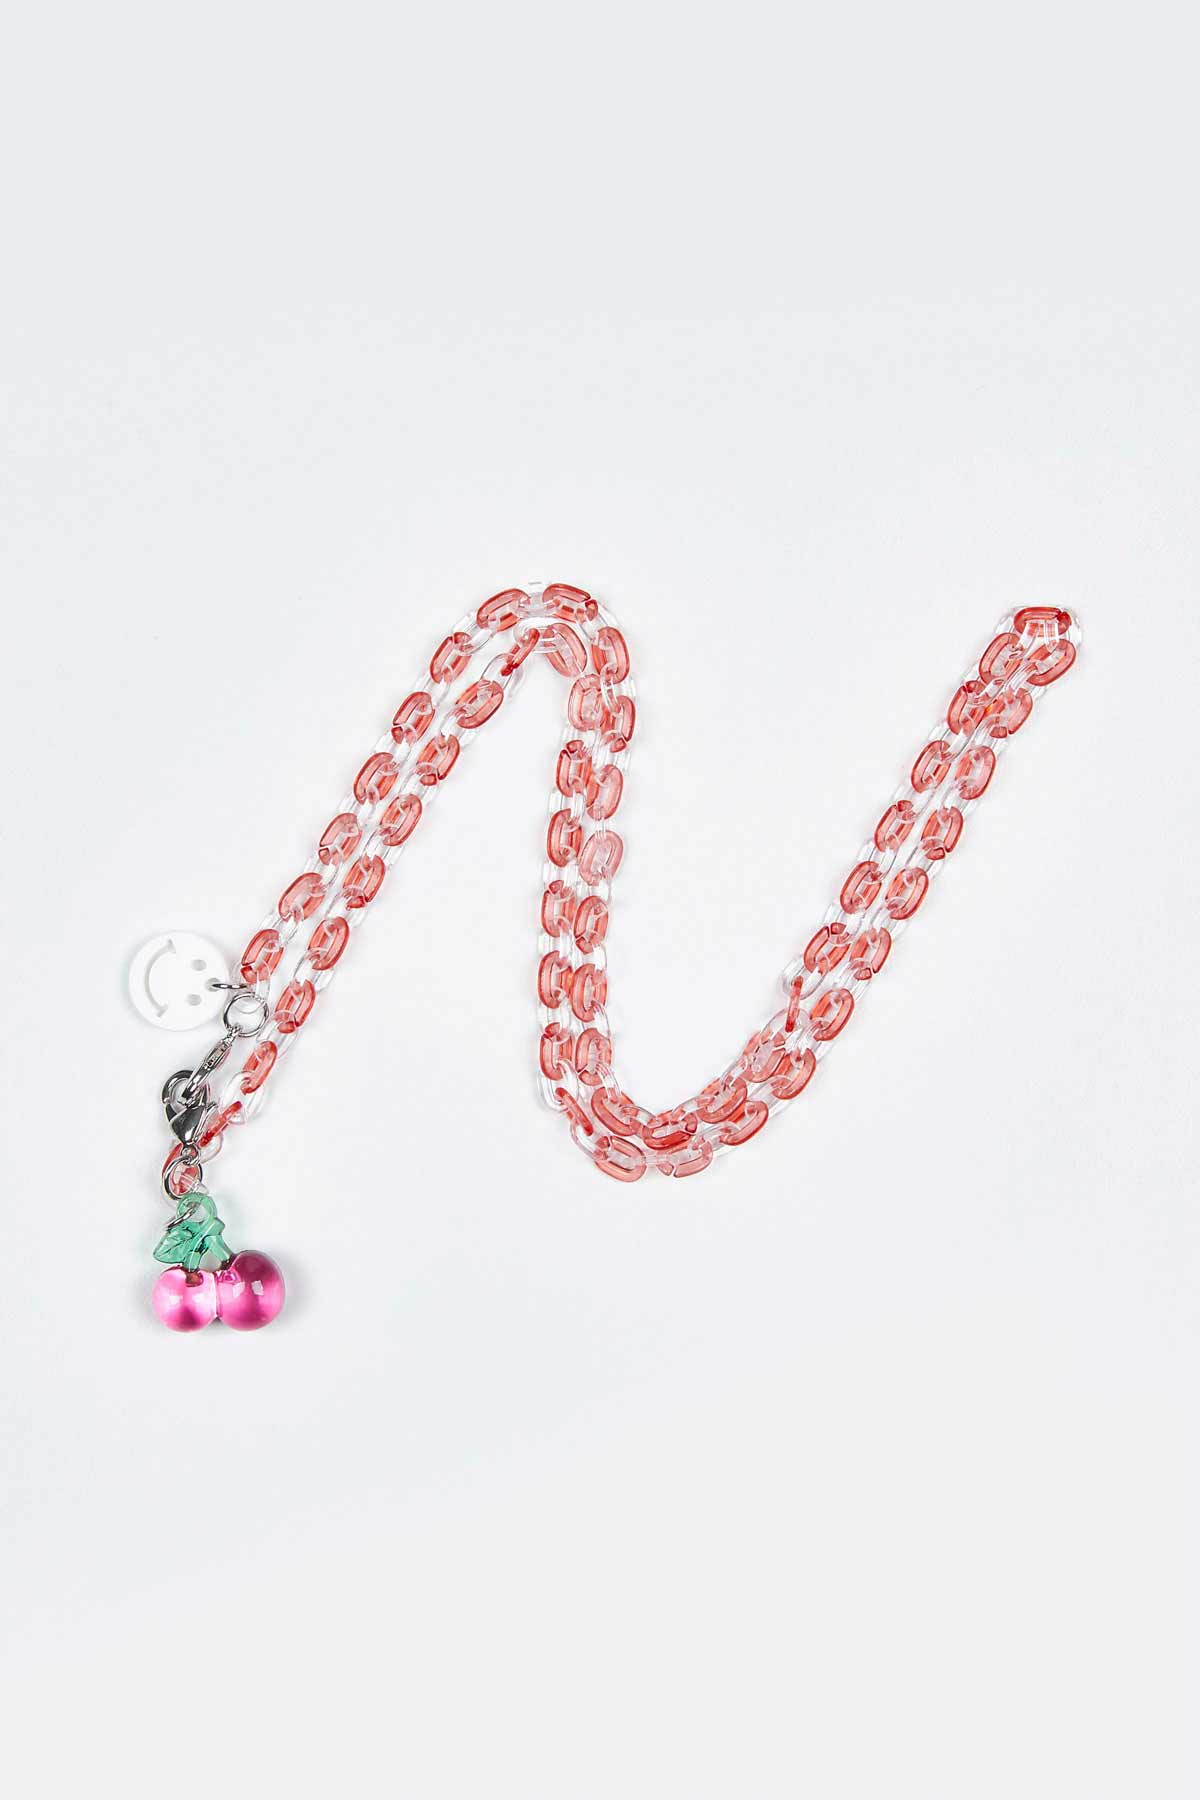 Cotton Candy Clear Mask Chain Set (2 chains)